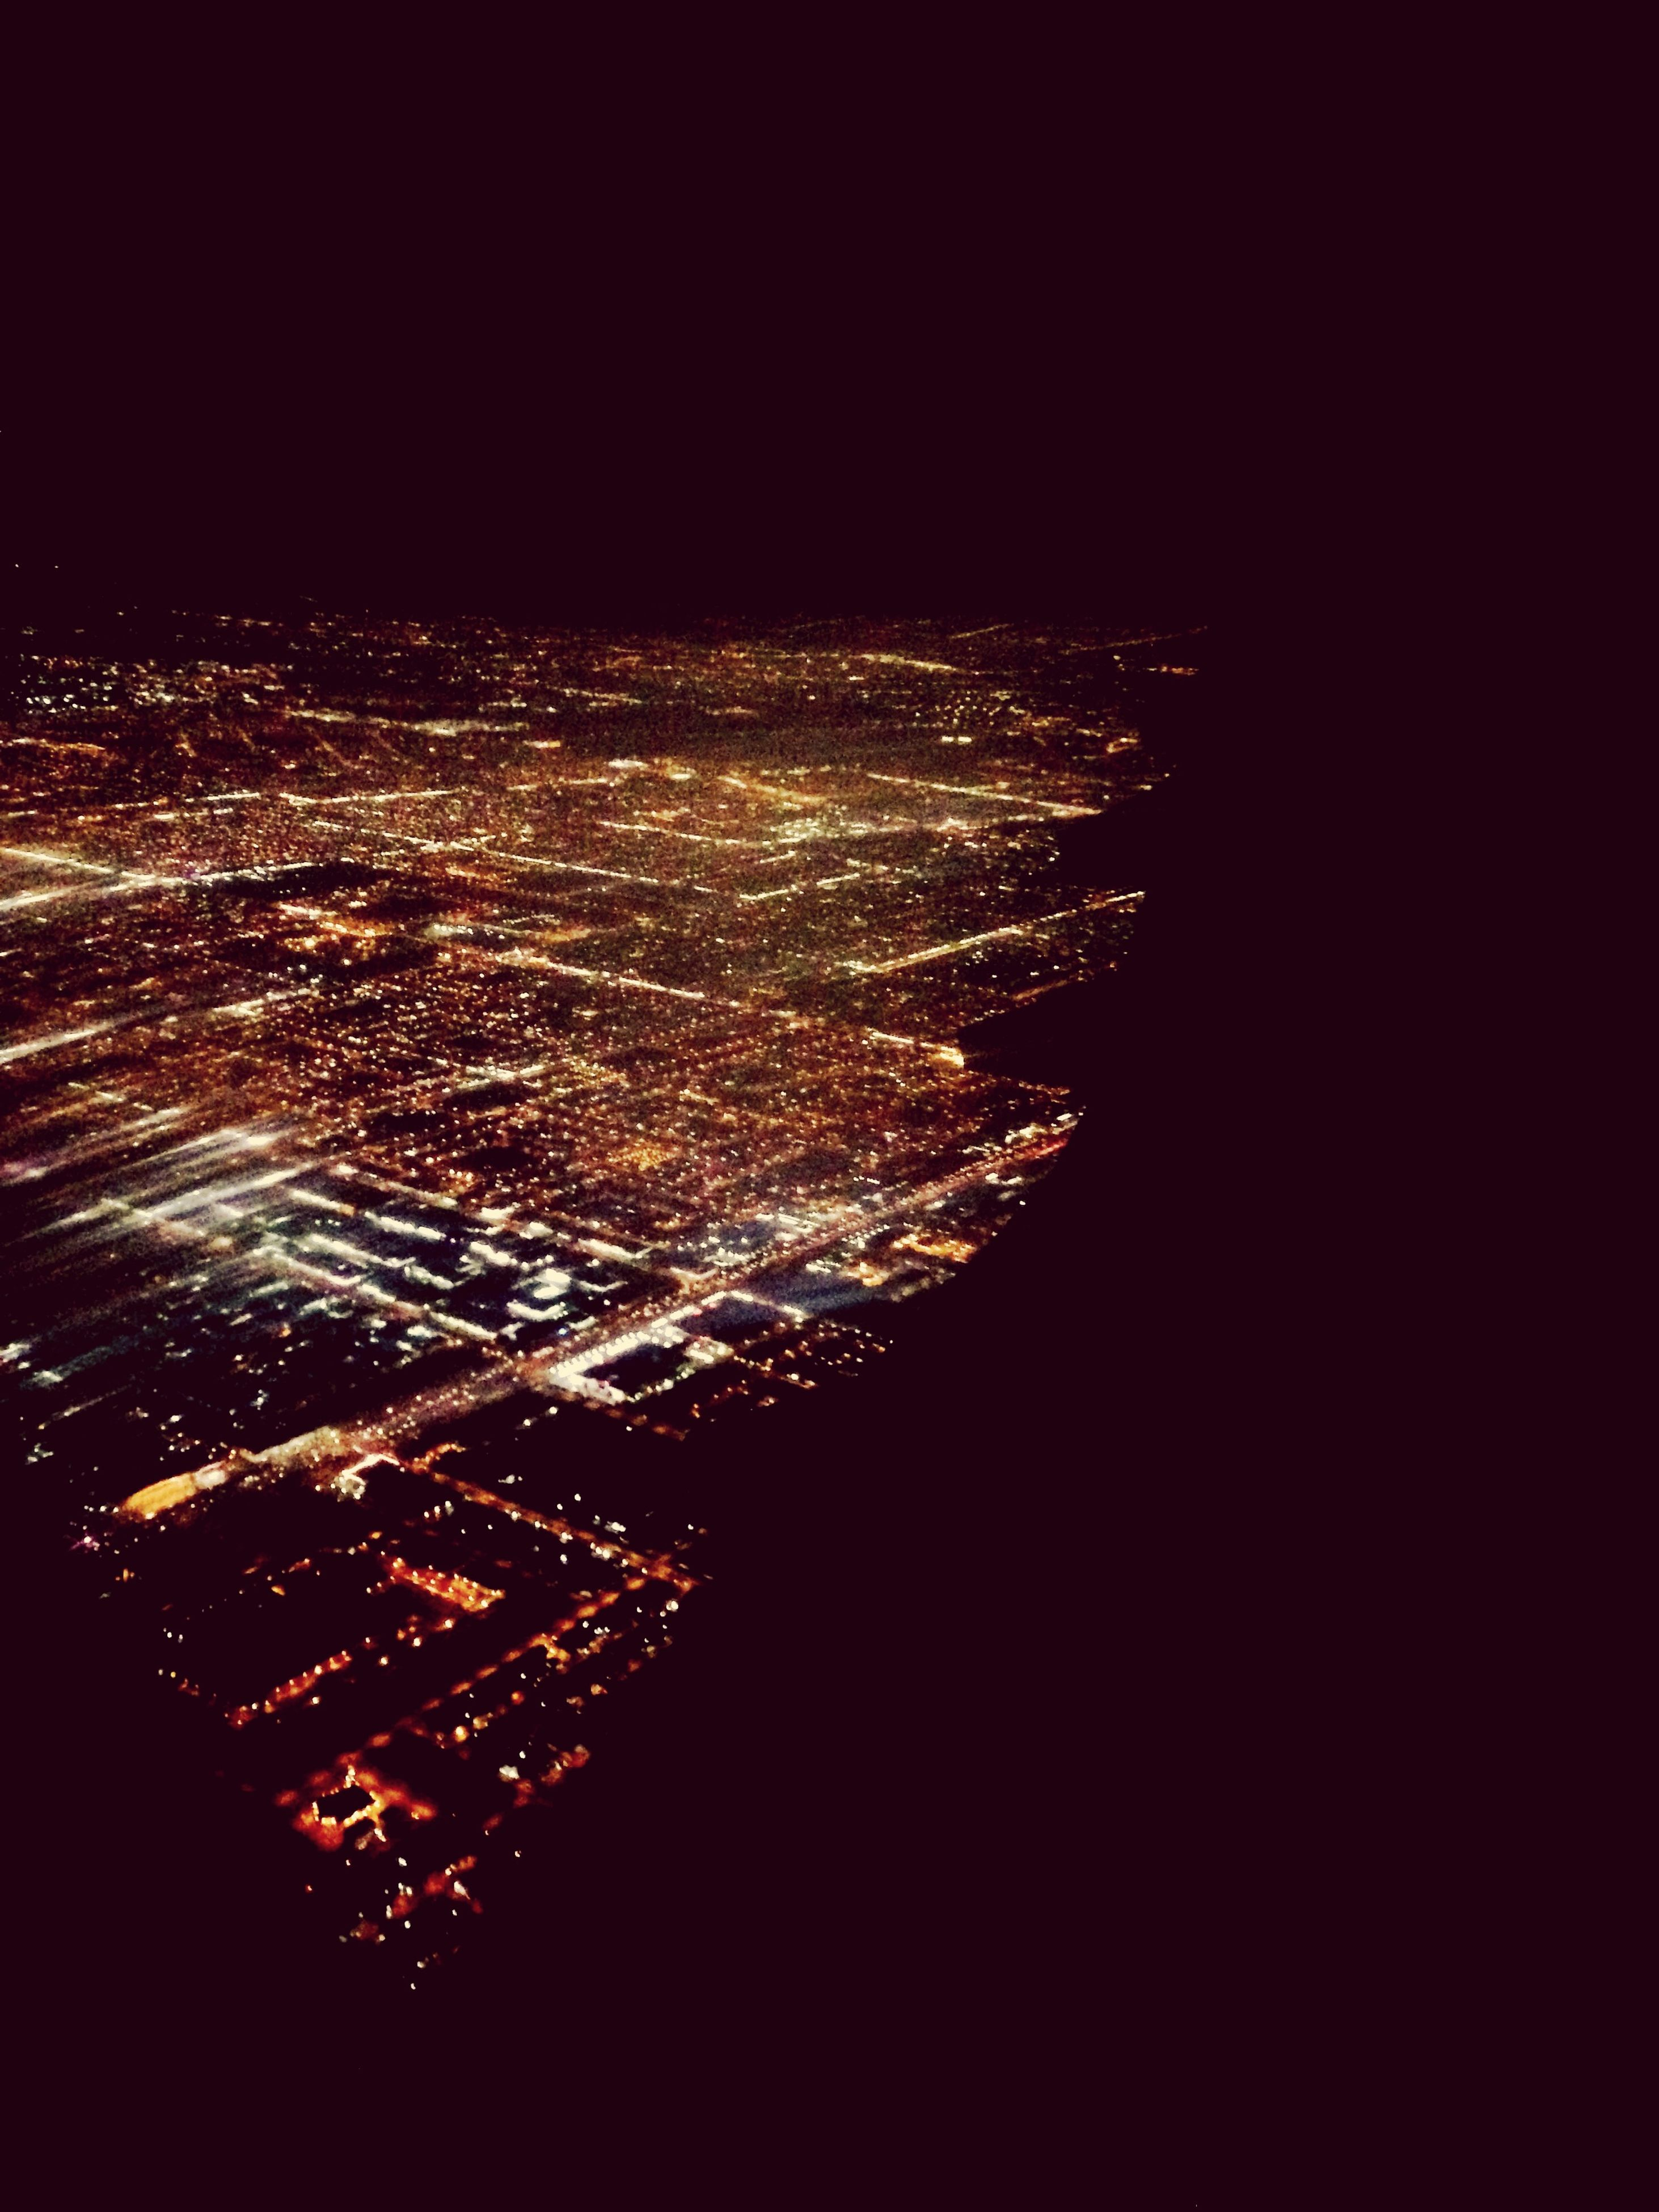 night, illuminated, city, cityscape, architecture, building exterior, built structure, aerial view, high angle view, sky, dark, long exposure, copy space, modern, light, crowded, glowing, no people, city life, skyscraper